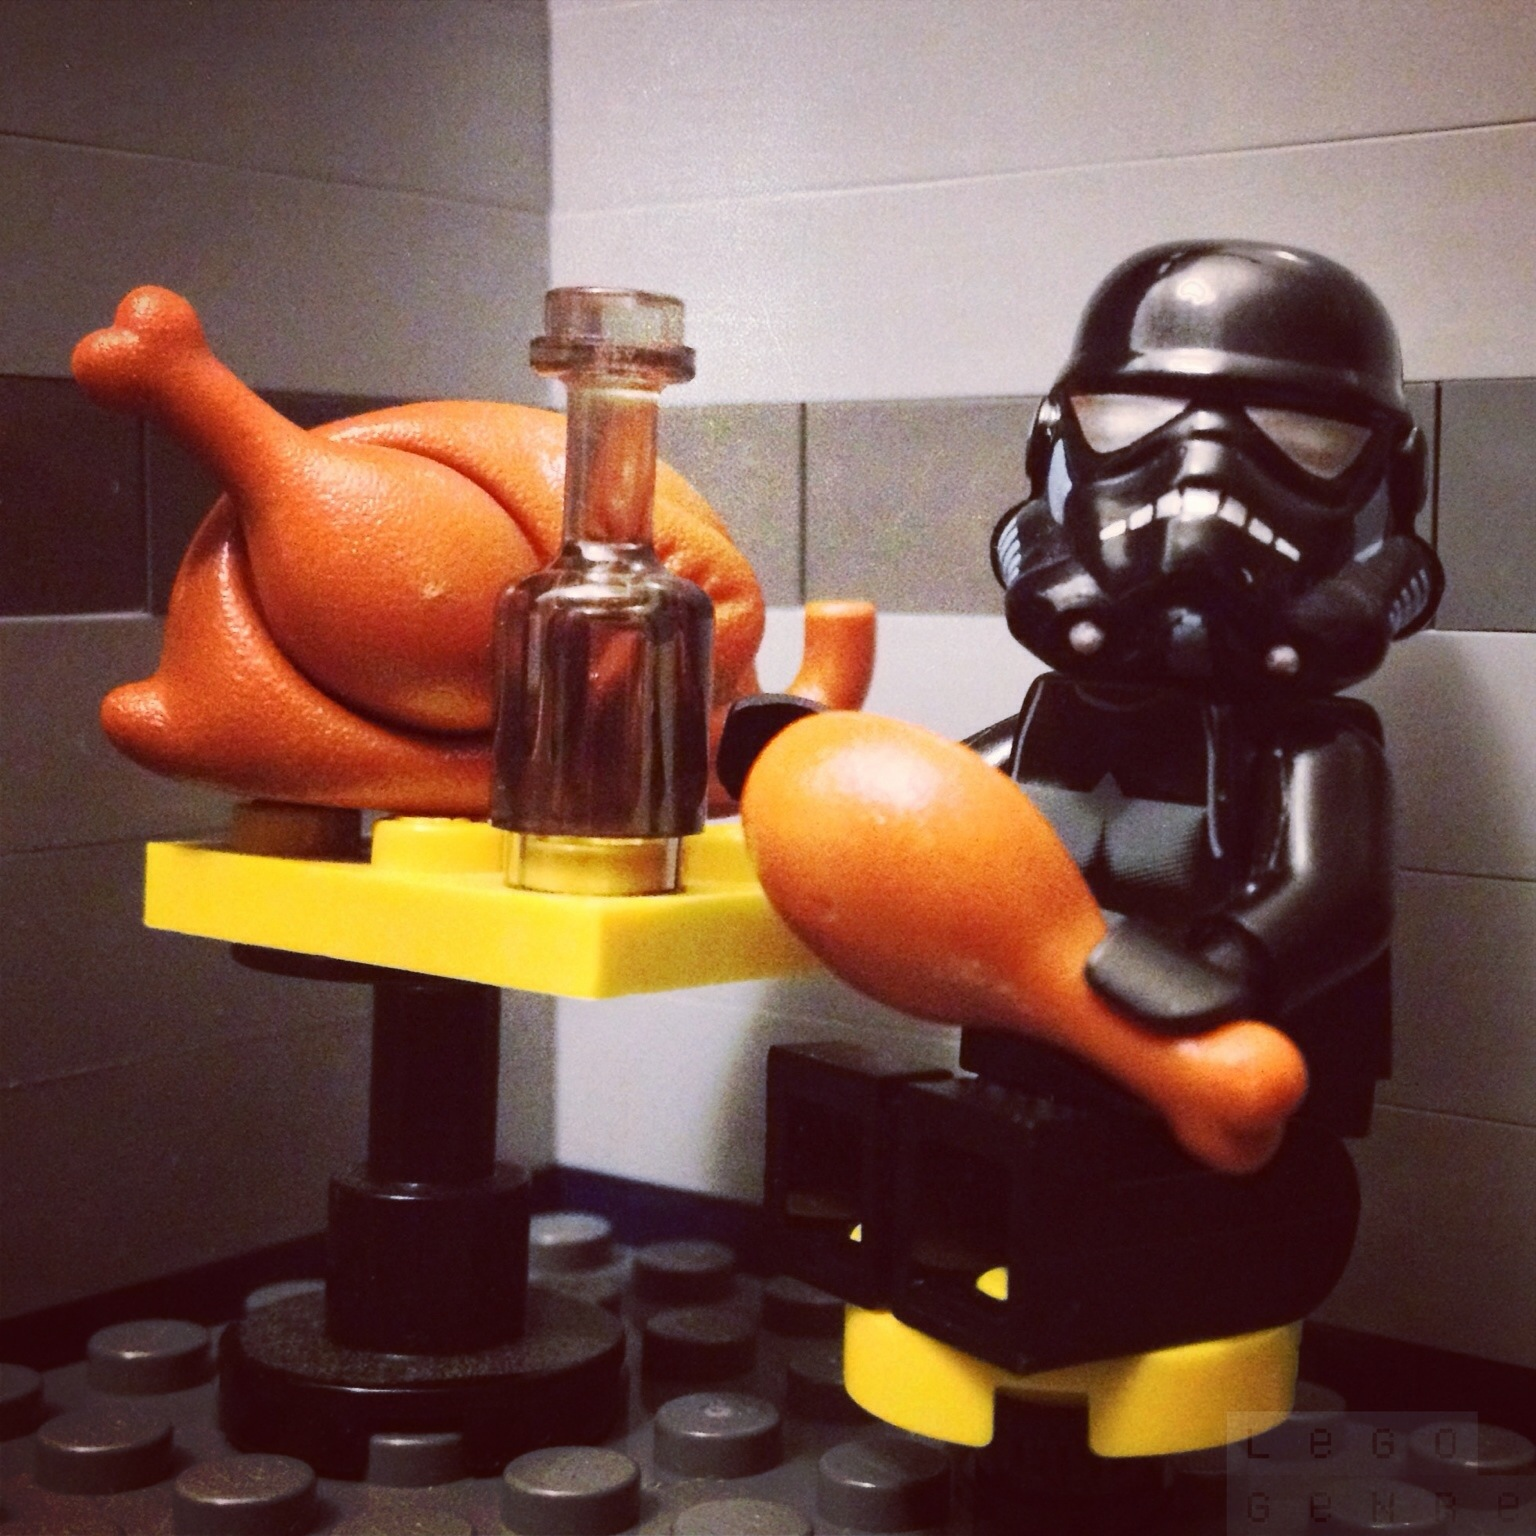 LegoGenre 00241: Dinner Time With Robert